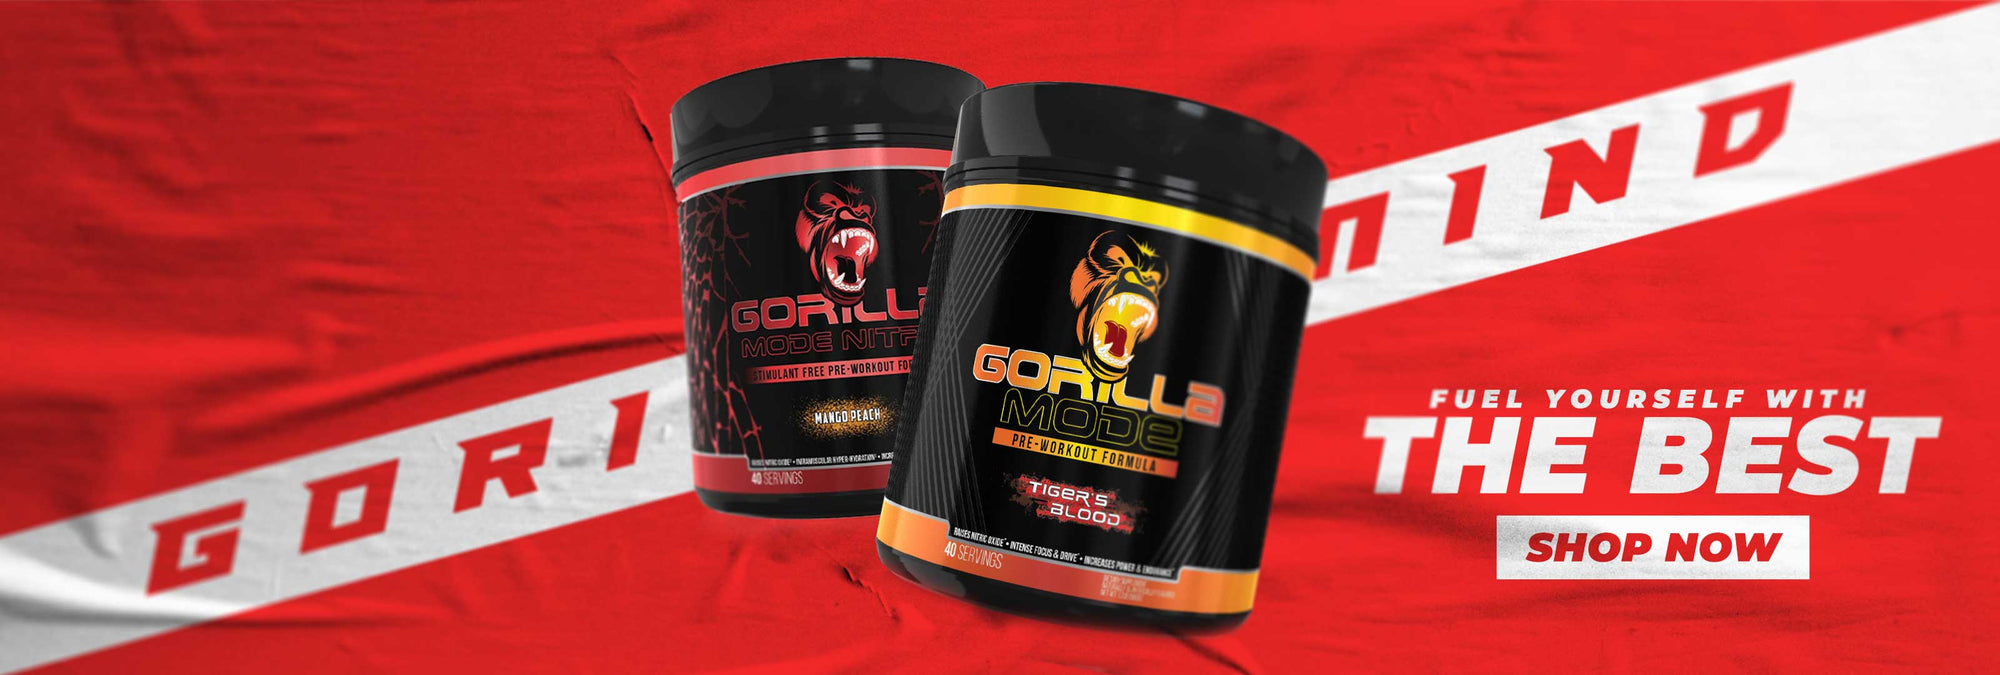 Gorilla Mind | Refuel yourself with the best | SHOP NOW